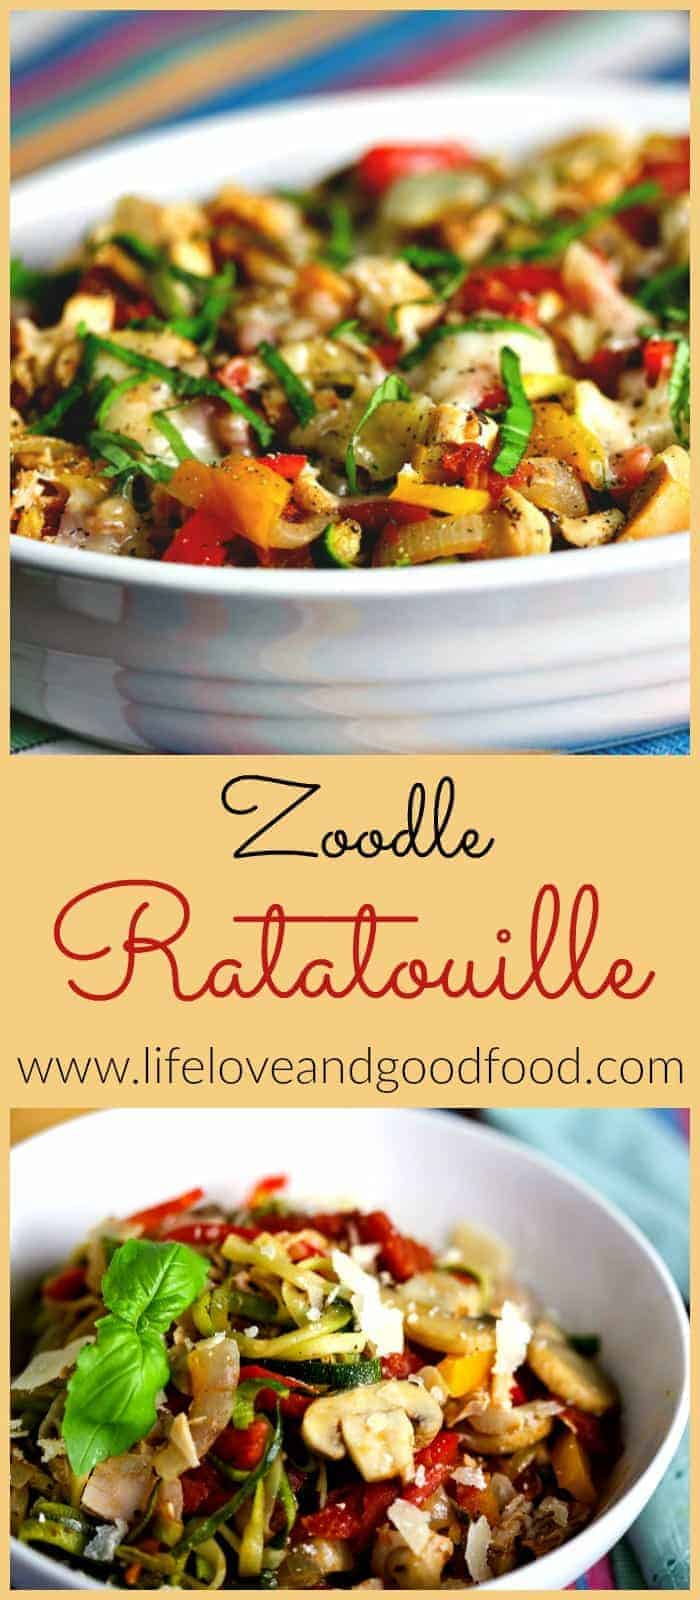 Zoodle Ratatouille is a composition of seasonal vegetables—zucchini, onions, sweet bell peppers, and tomatoes—cooked with olive oil and garlic.